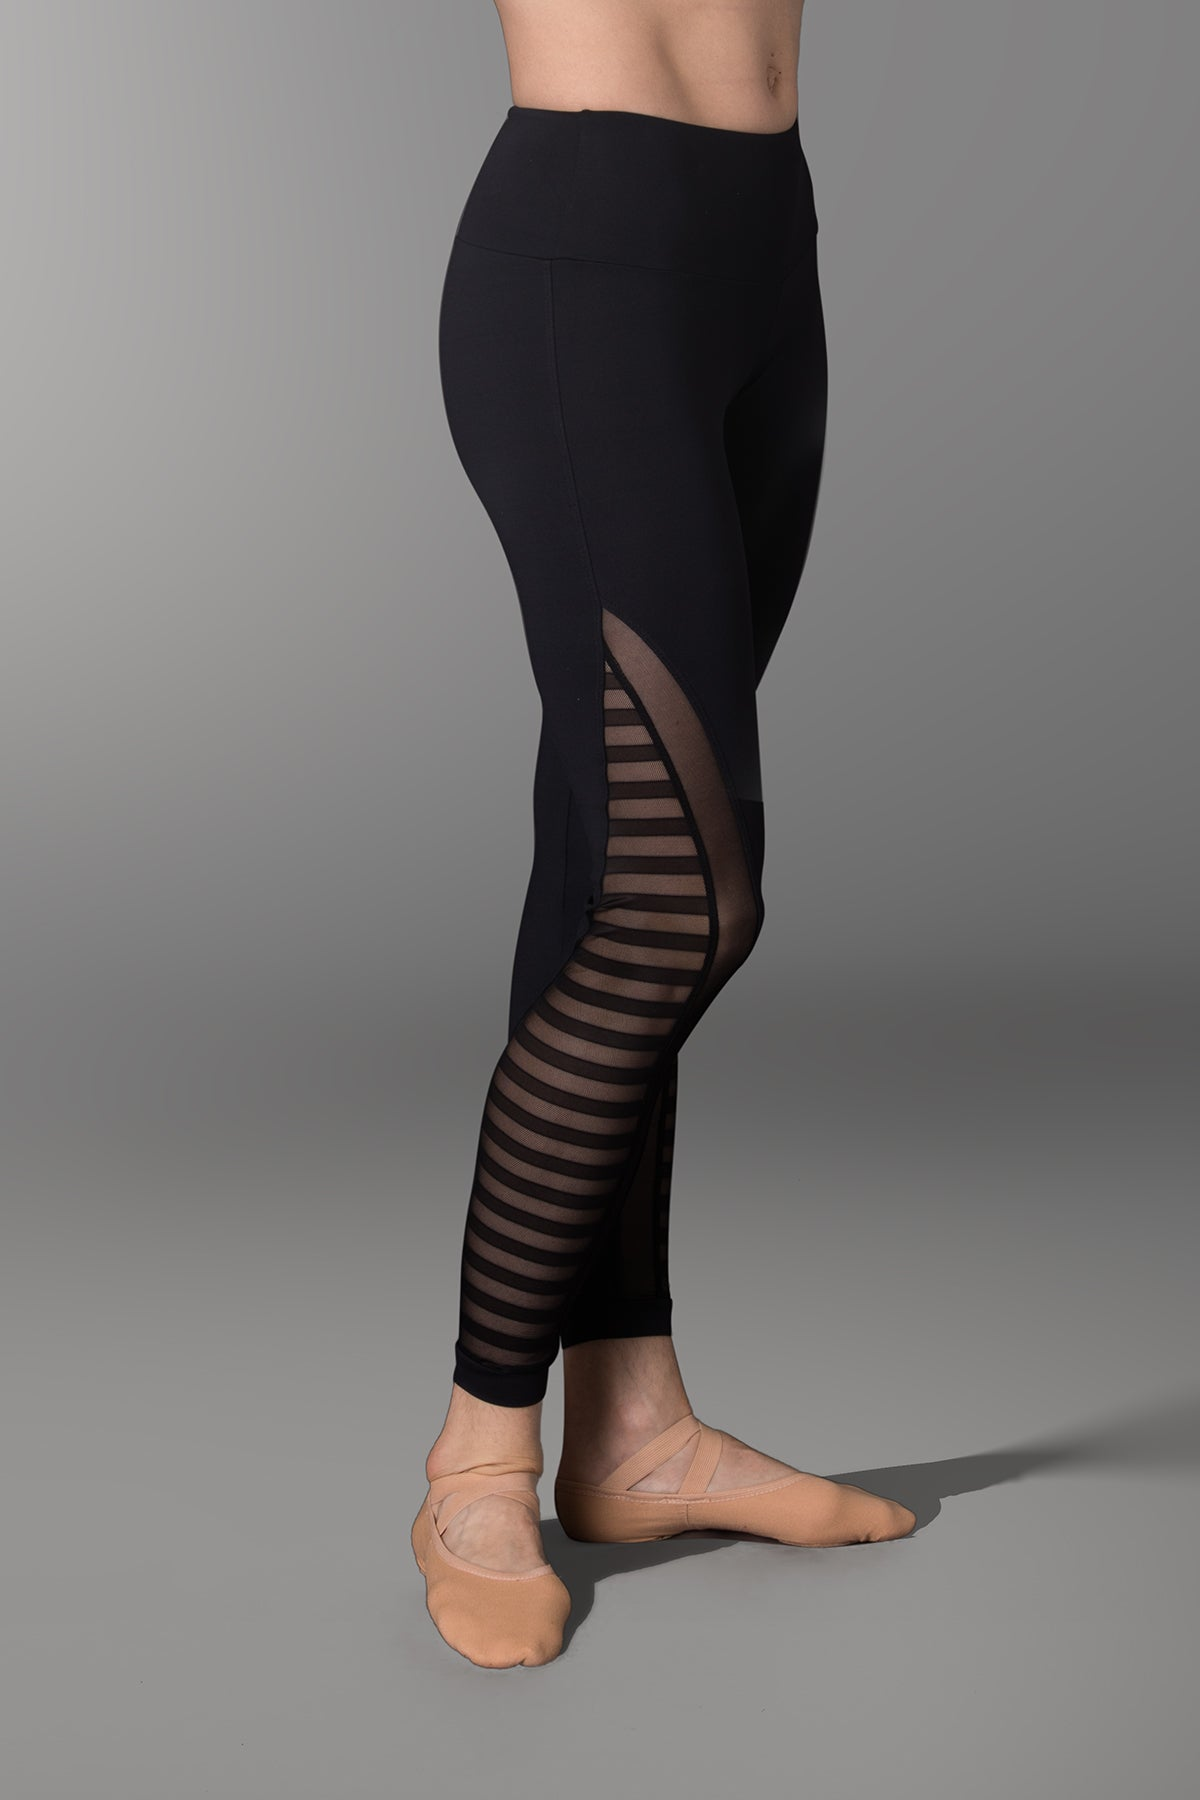 So Danca Sara Mearns Striped Mesh Leggings - RDE1782